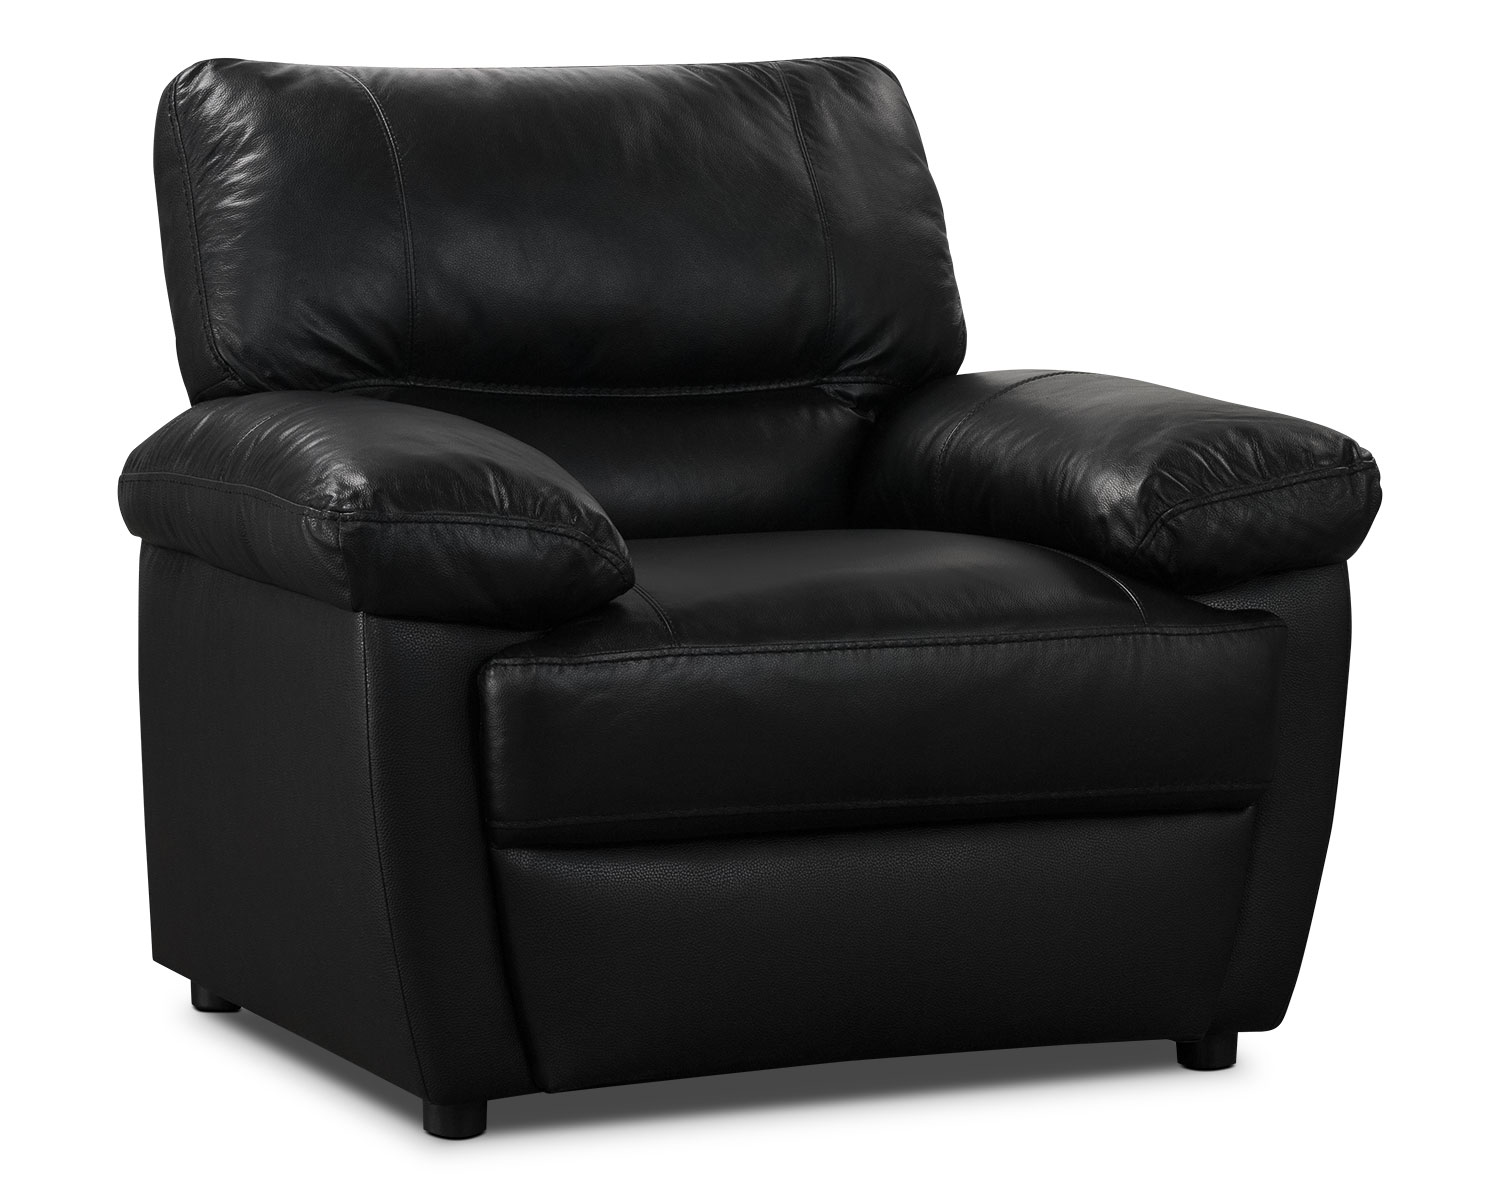 Tess Genuine Leather Chair – Black